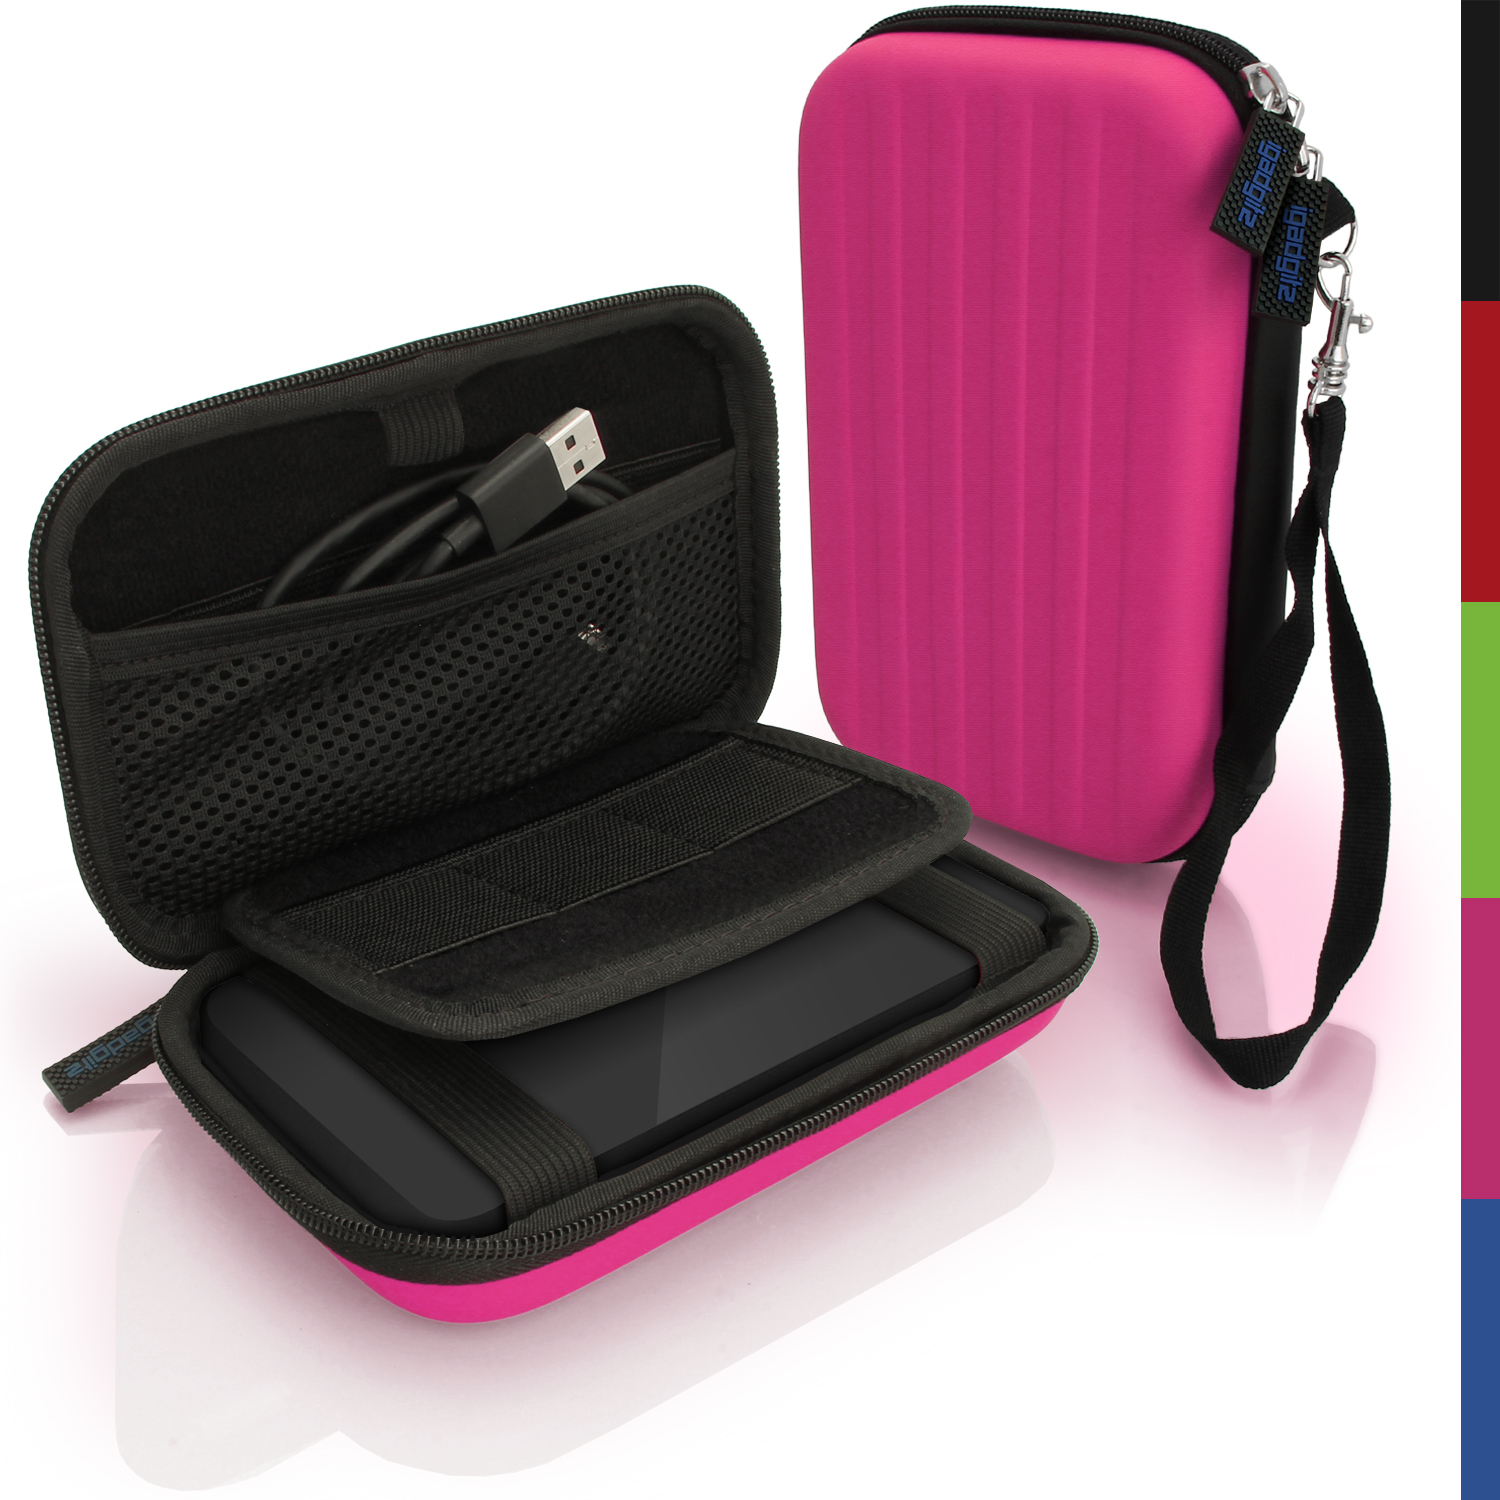 iGadgitz Pink EVA Hard Travel Case Cover for Portable External Hard Drives (Internal Dimensions: 142 x 80.6 x 21.6mm)